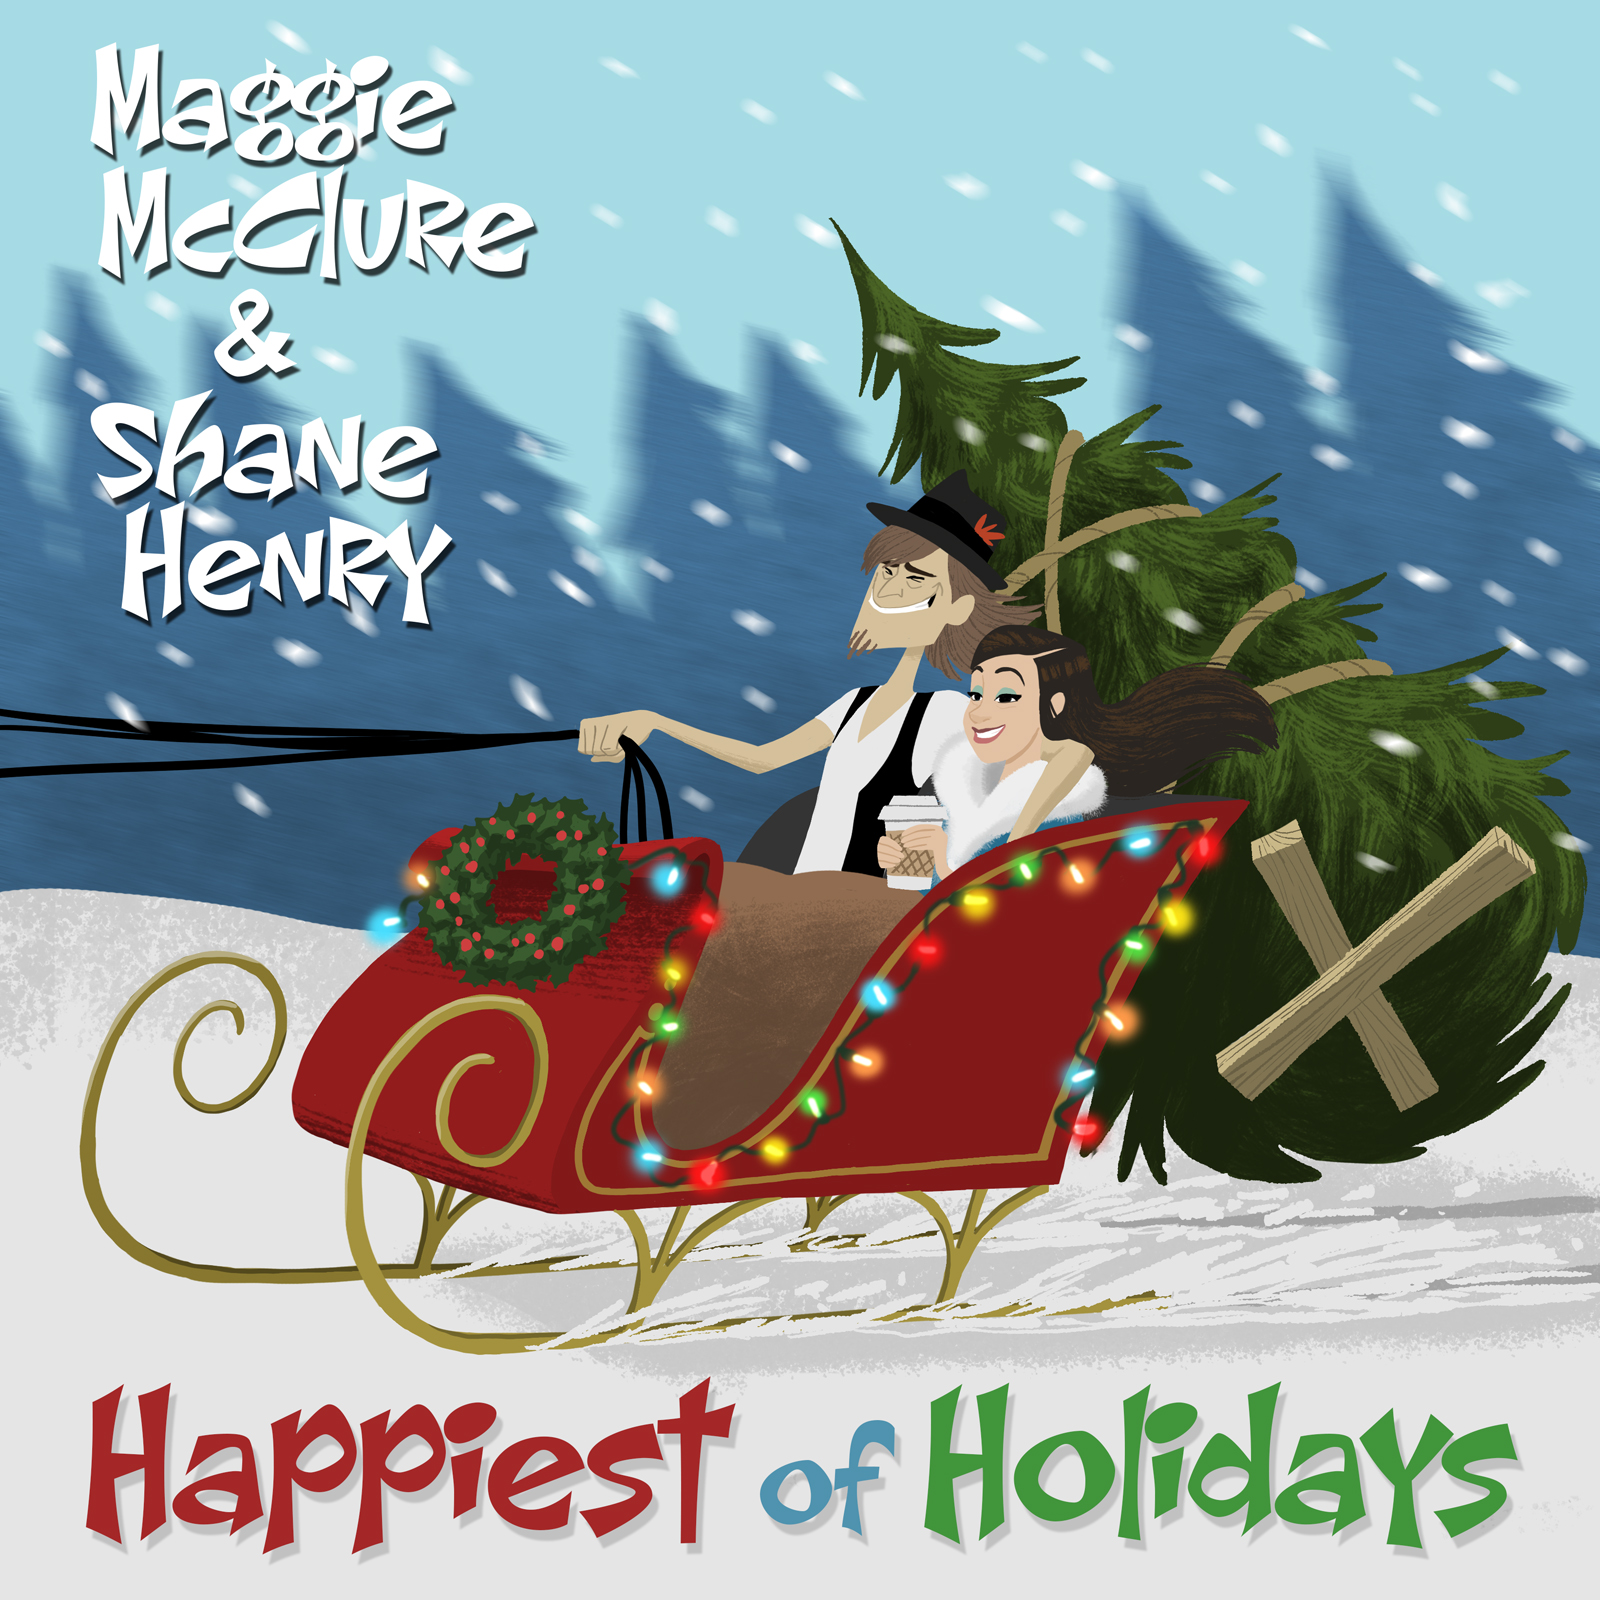 Happiest of Holidays (Maggie McClure & Shane Henry) by Maggie McClure